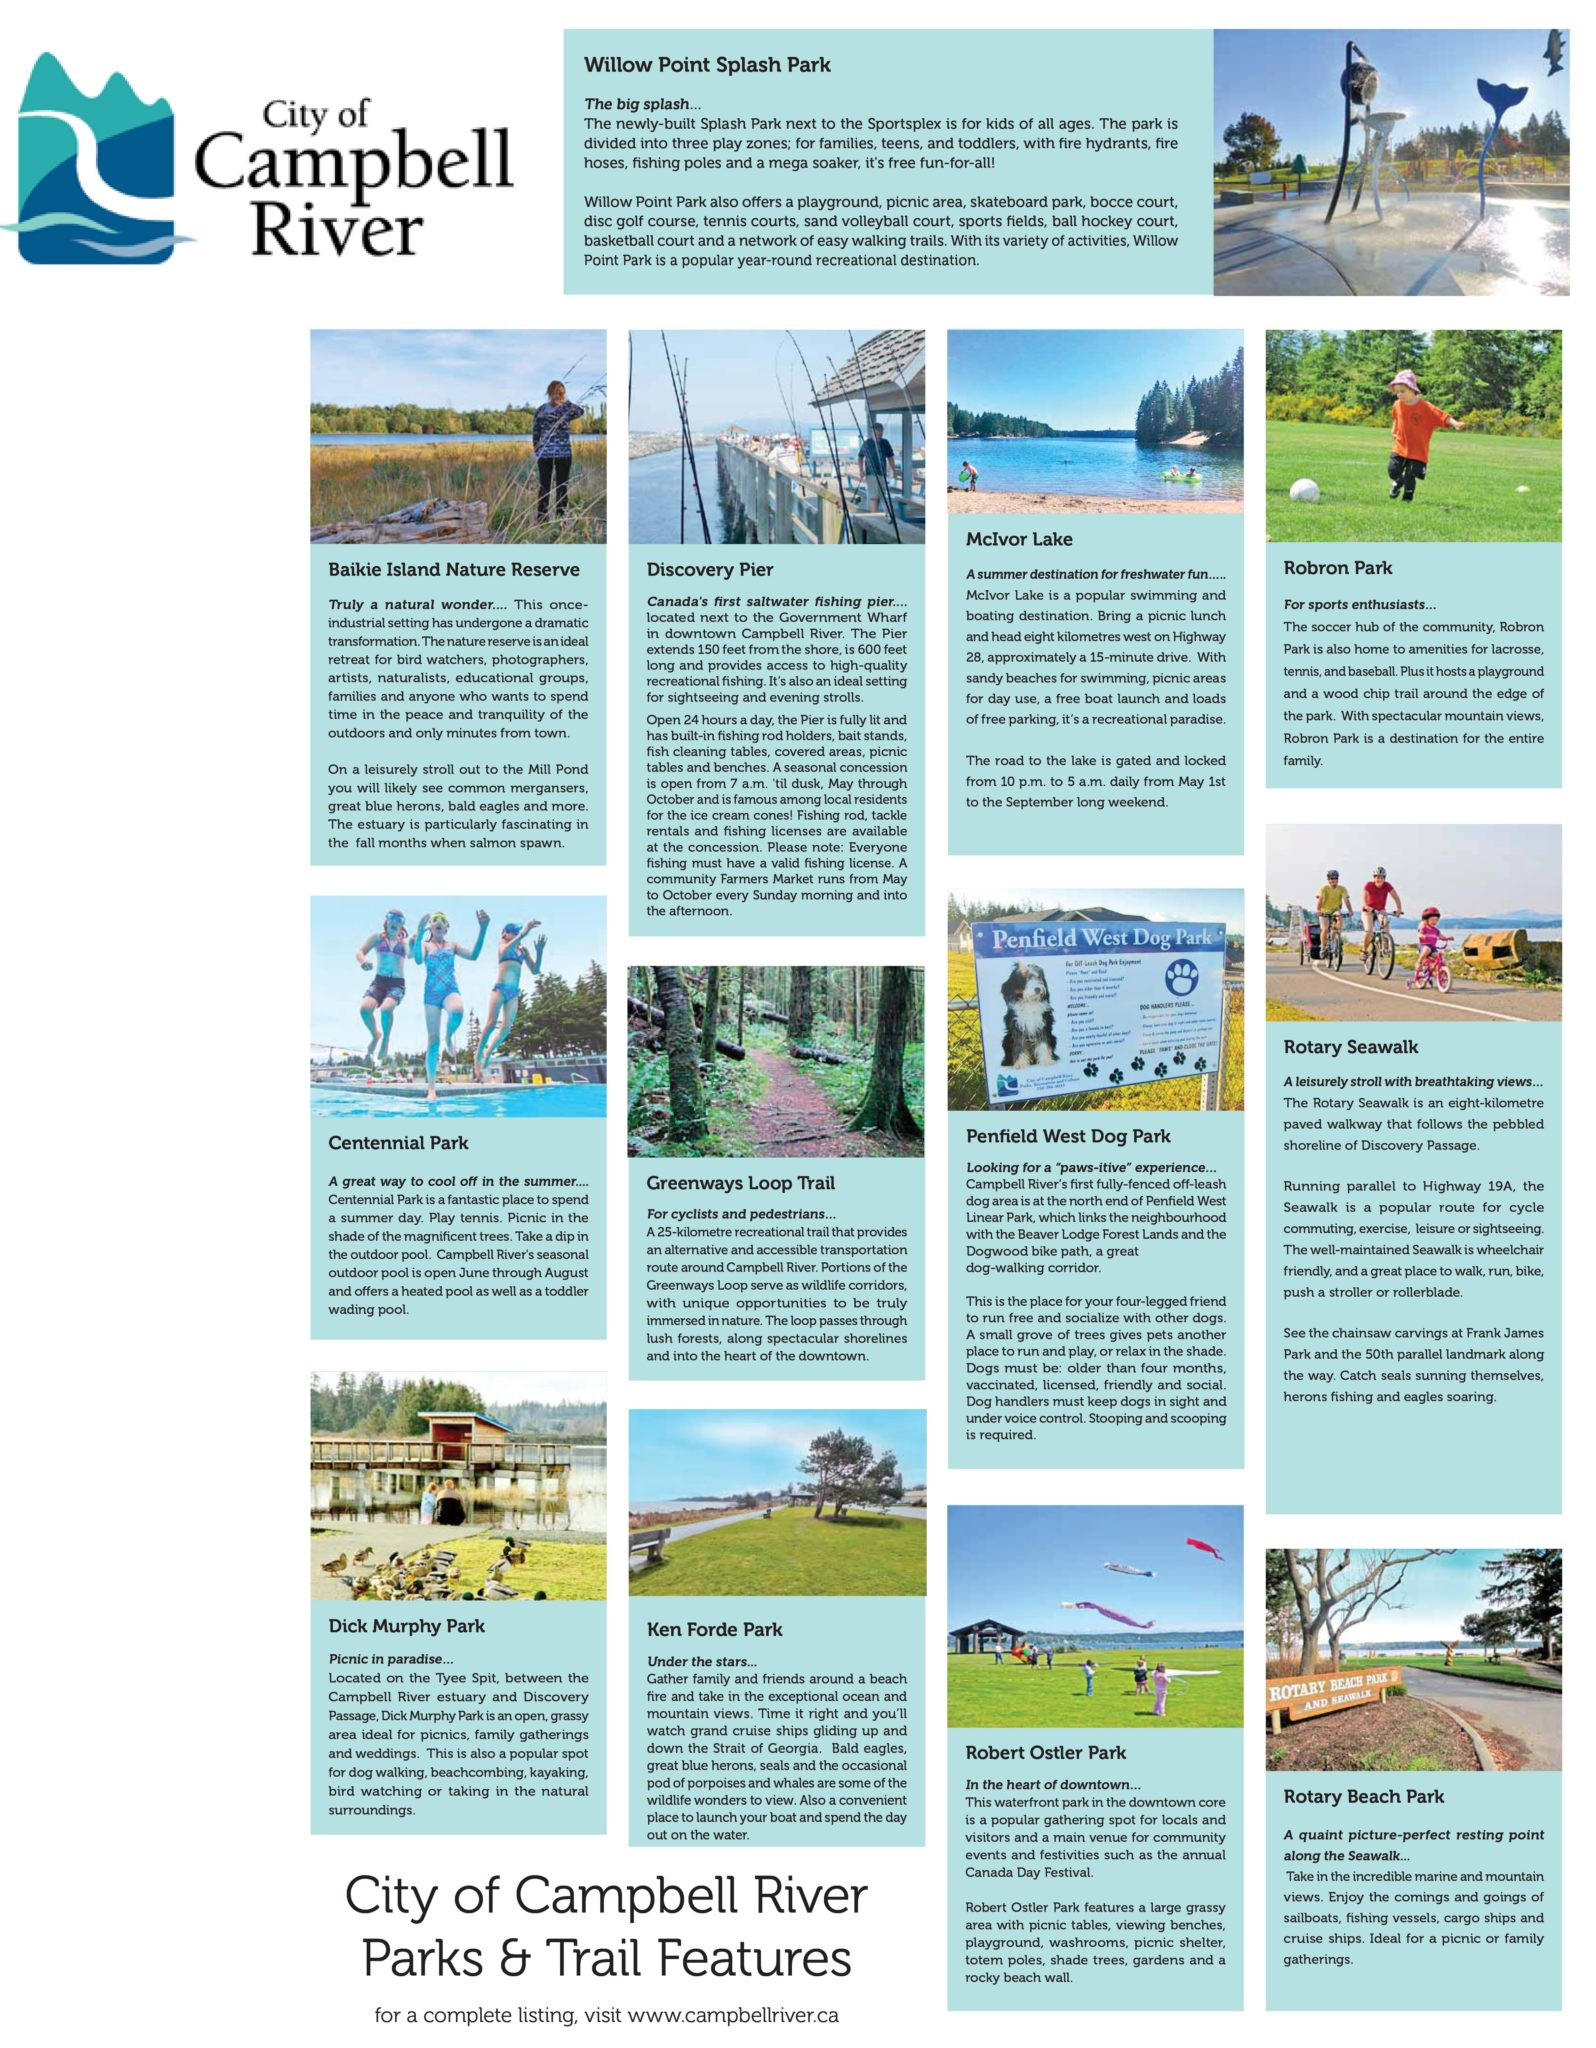 Campbell River Parks & Trail Features